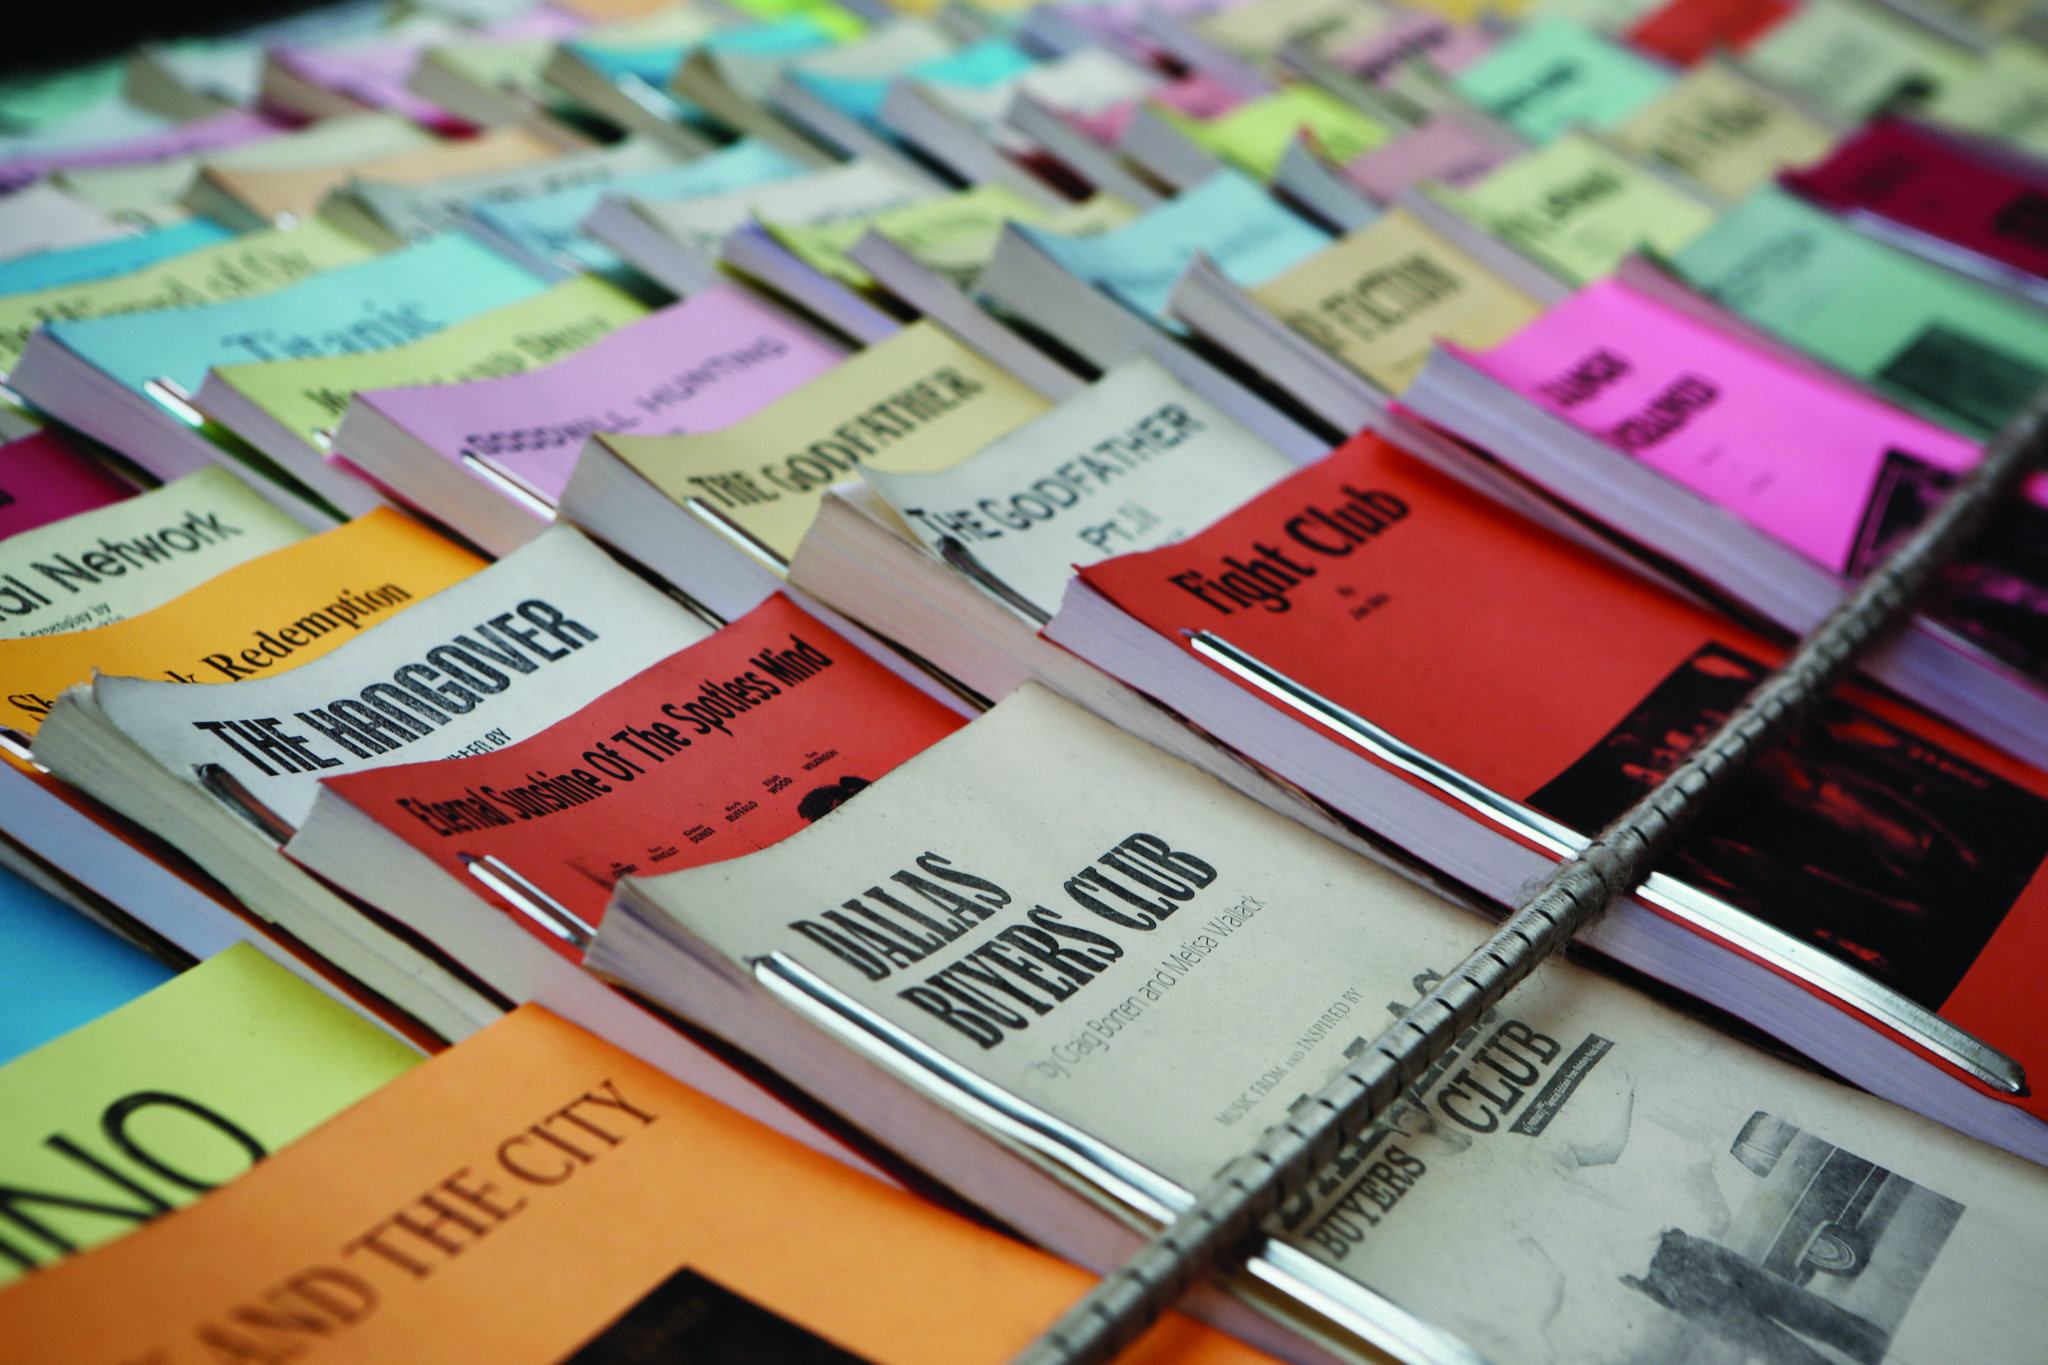 Screenplays laid out on table